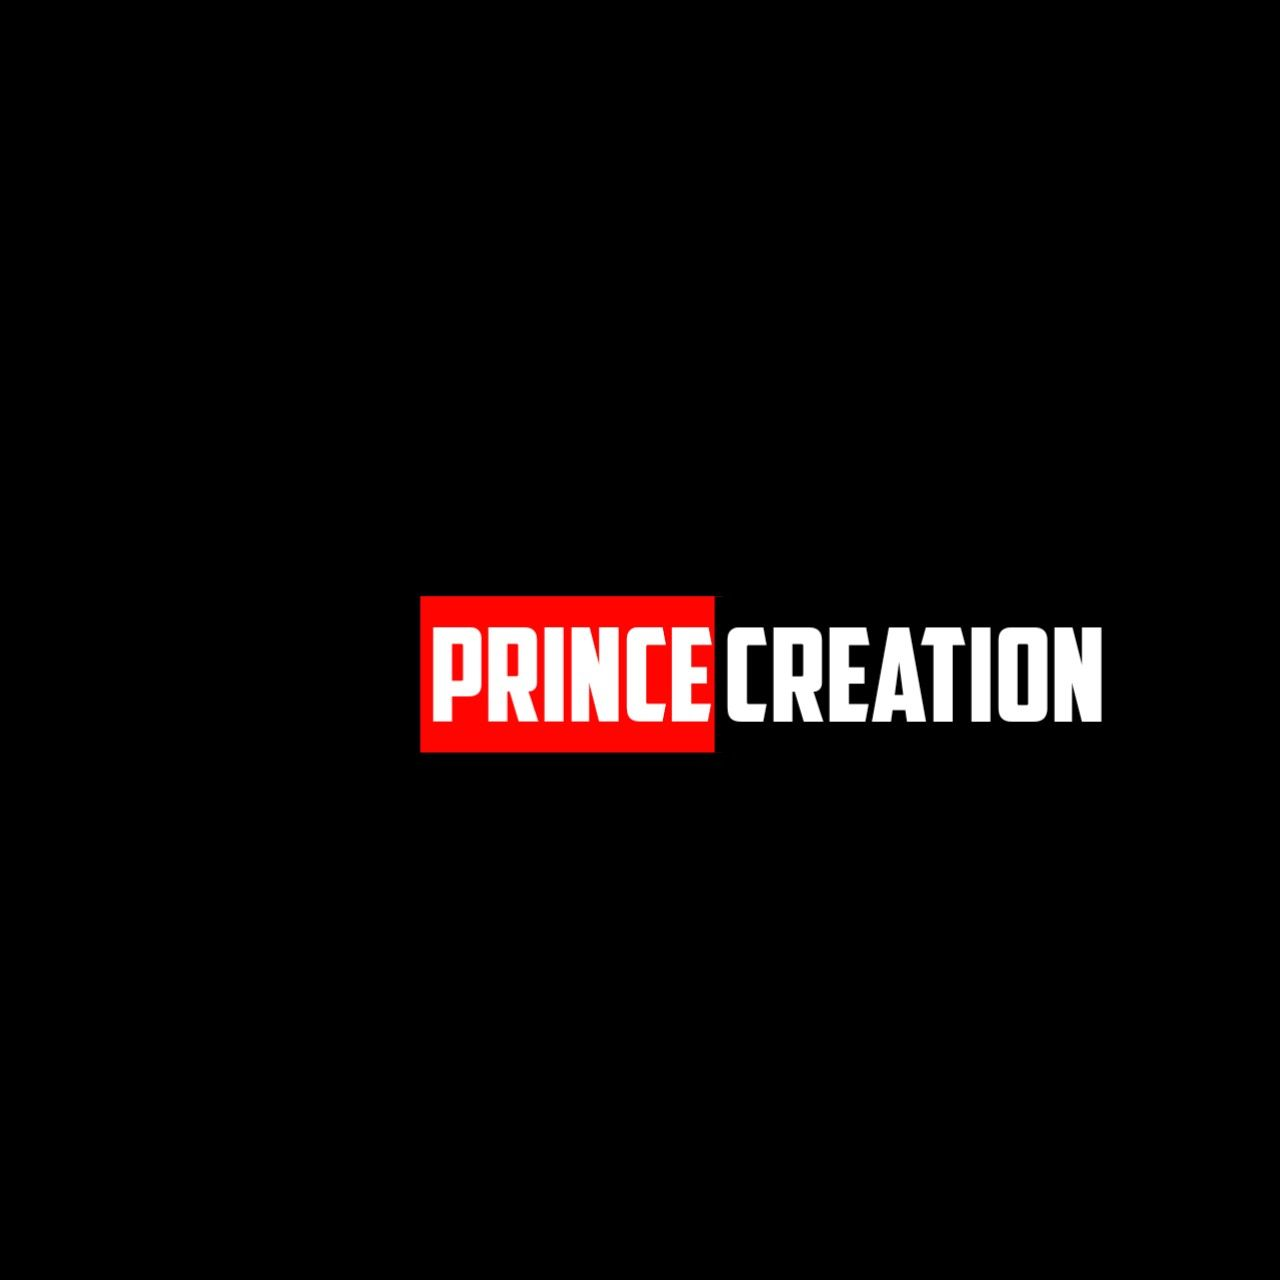 Prince Creation Prince Youtube Channel